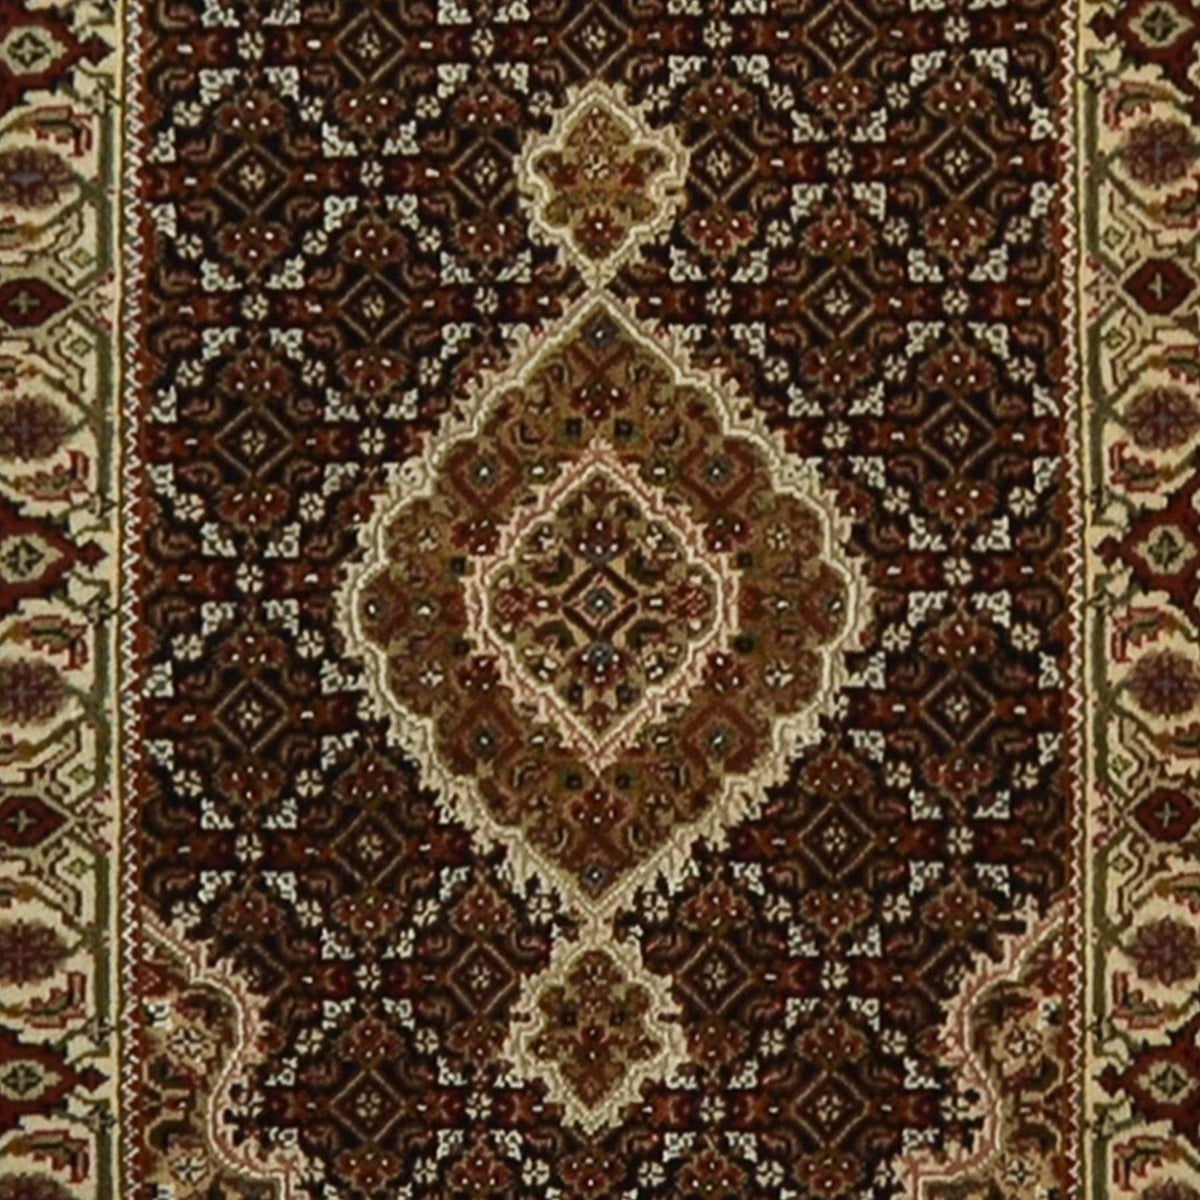 Fine Hand-knotted Wool Persian Tabriz' Mahi' Design Runner 80cm x 202cm Persian-Rug | House-of-Haghi | NewMarket | Auckland | NZ | Handmade Persian Rugs | Hand Knotted Persian Rugs